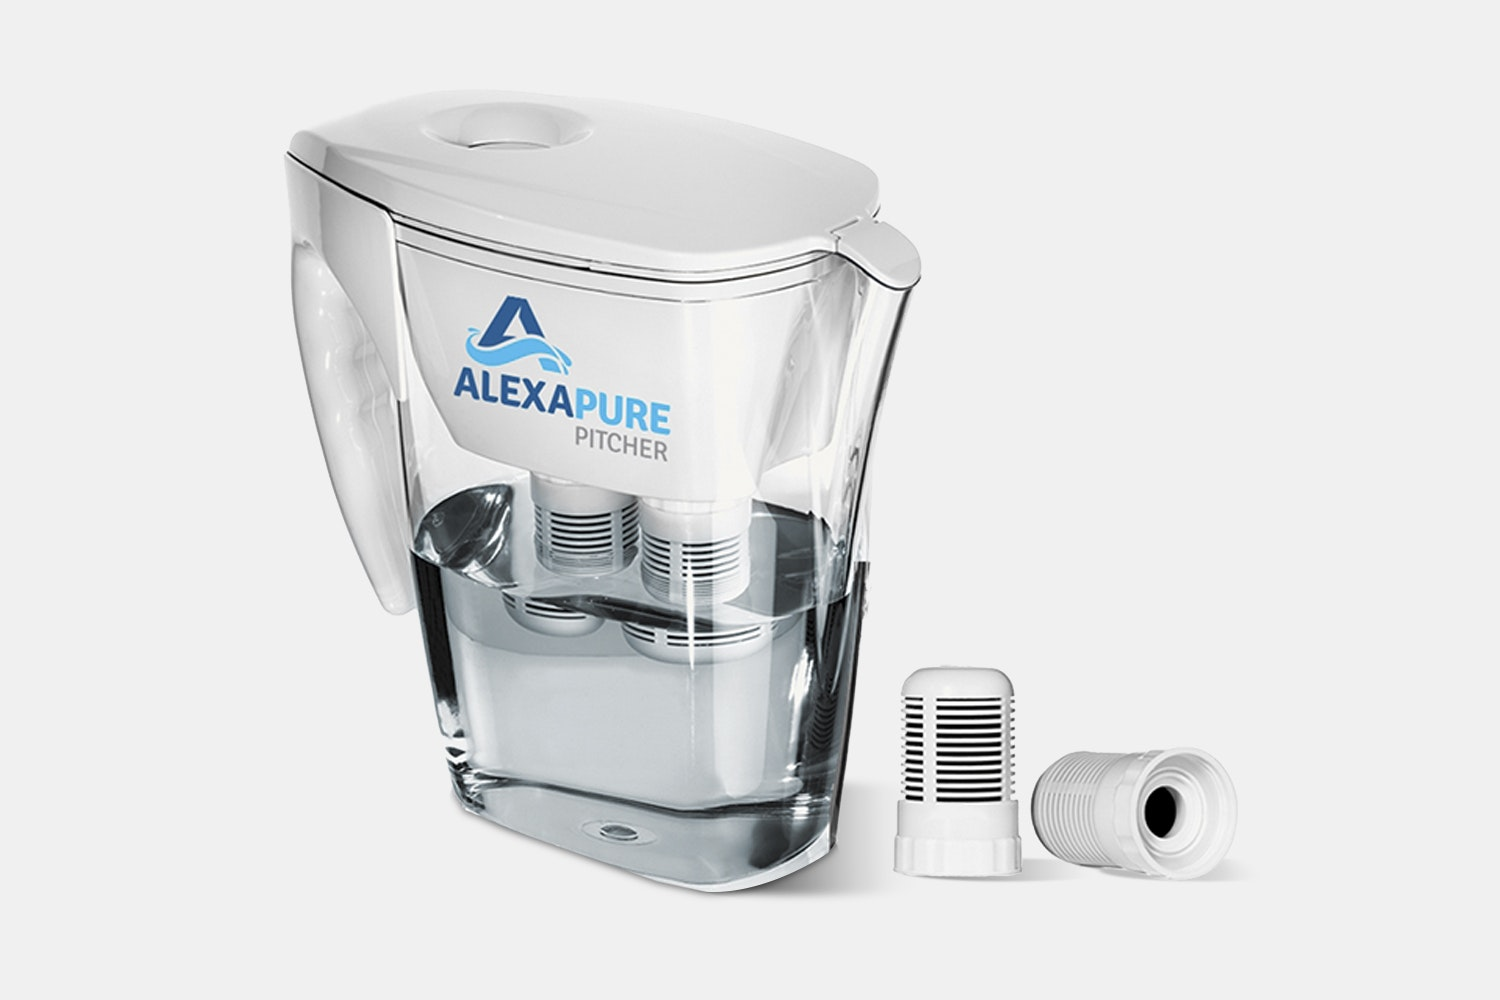 alexapure pitcher water filtration system | price & reviews | massdrop